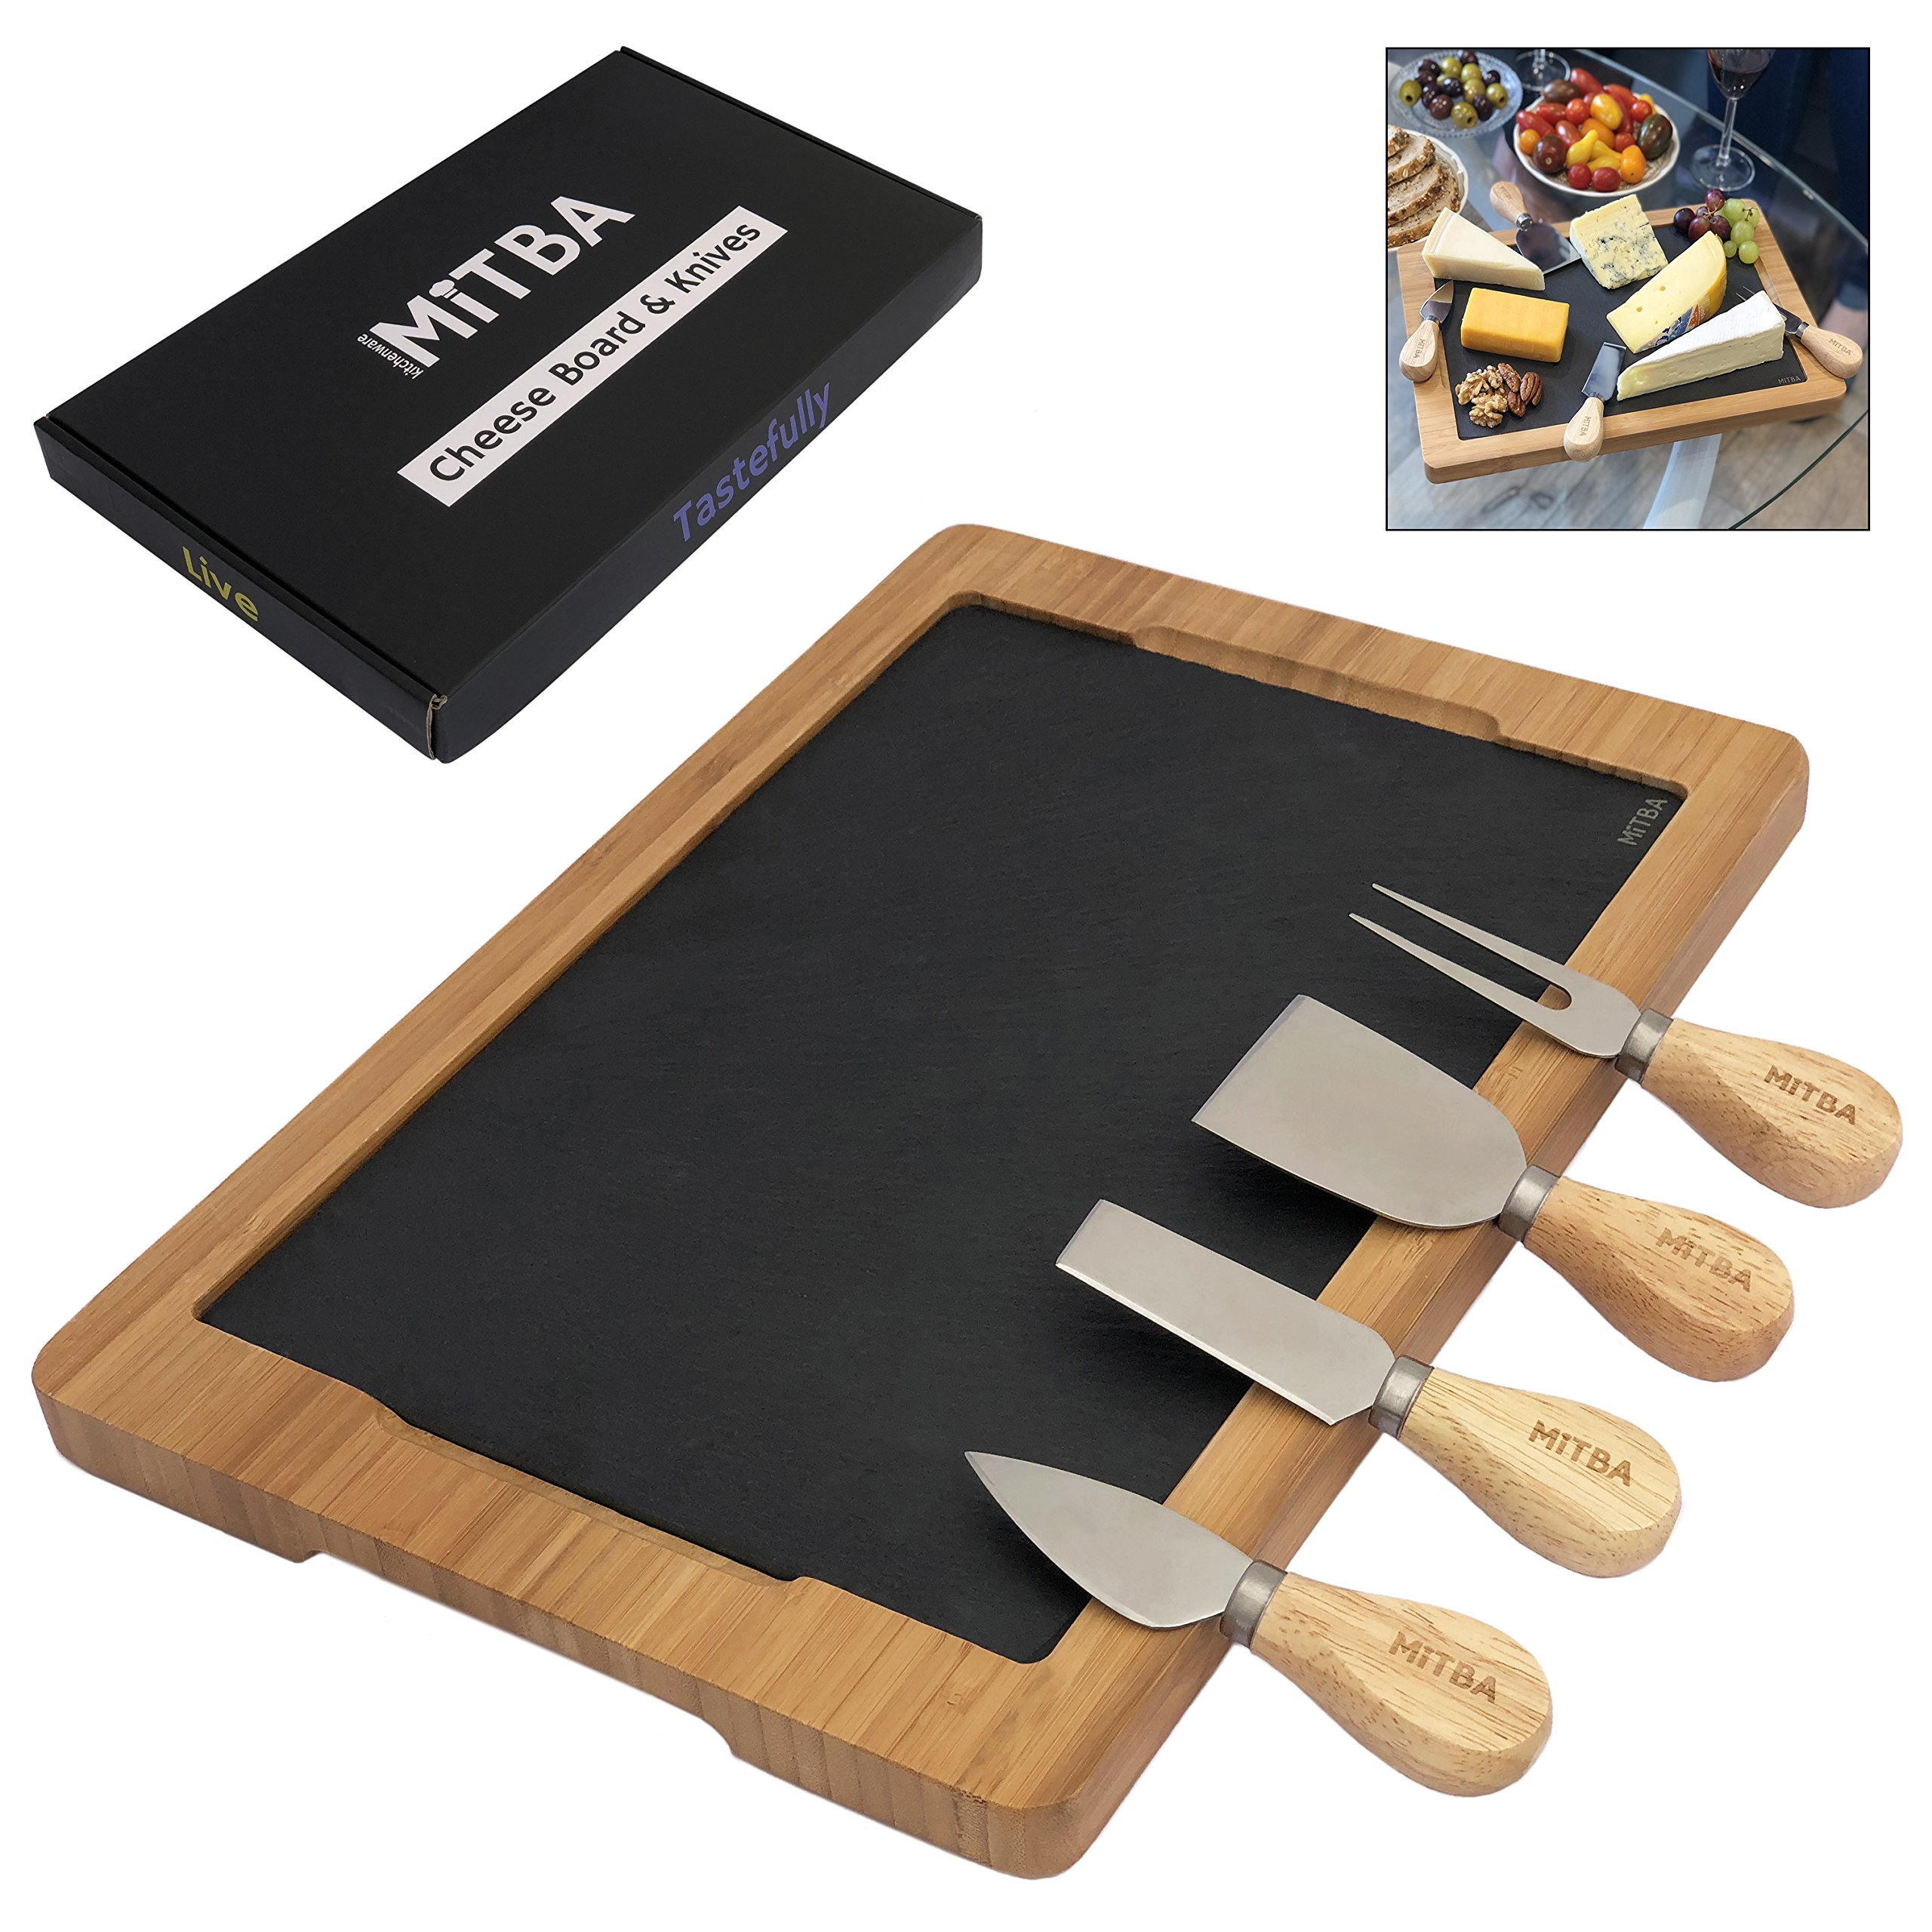 Cheese Board and Cheese Knife Cutlery Set by MiTBA – Cheese & Charcuterie Serving Tray Made of Natural Bamboo and Slate Stone Platters. Perfect Gift for Anniversary, Housewarming & Birthday Parties.